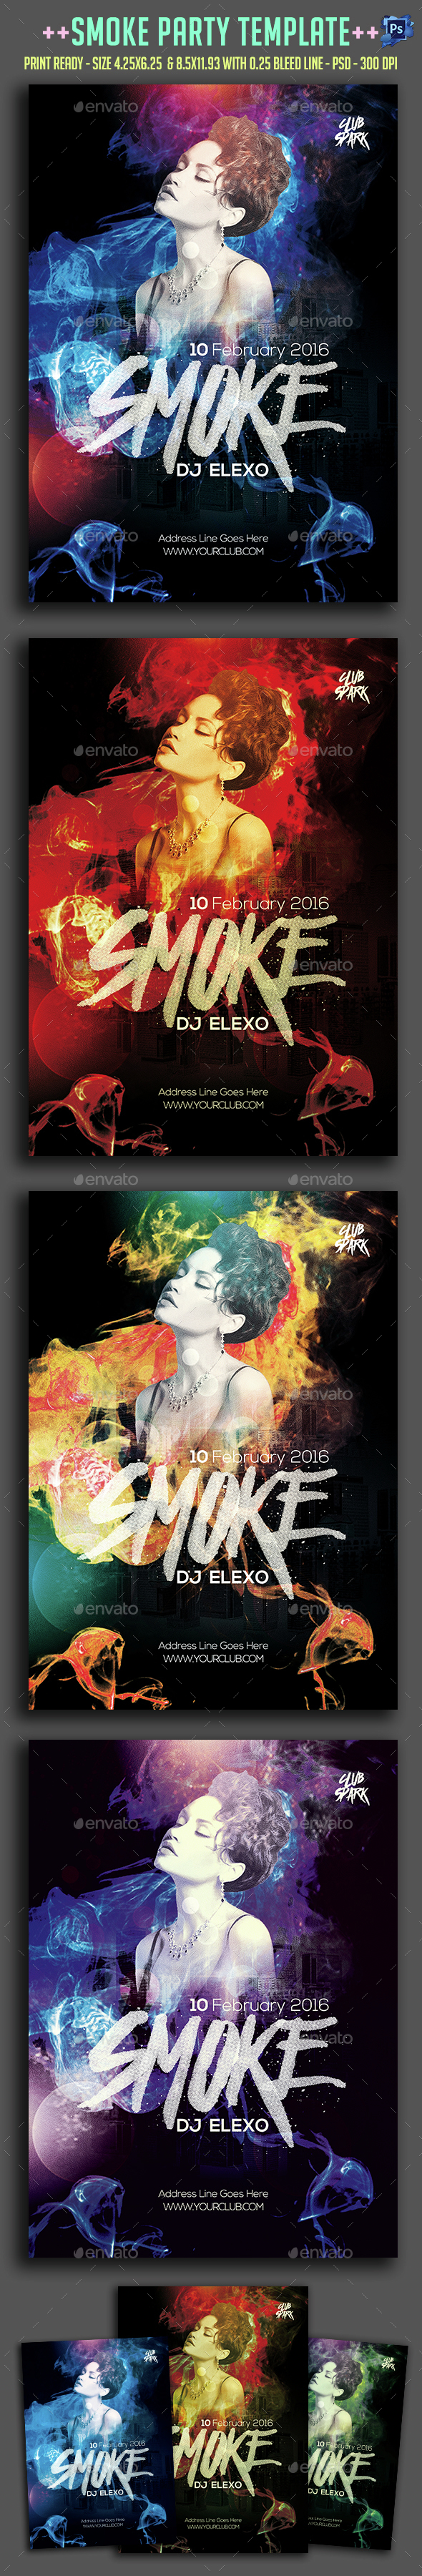 Smoke Party Flyer  - Clubs & Parties Events